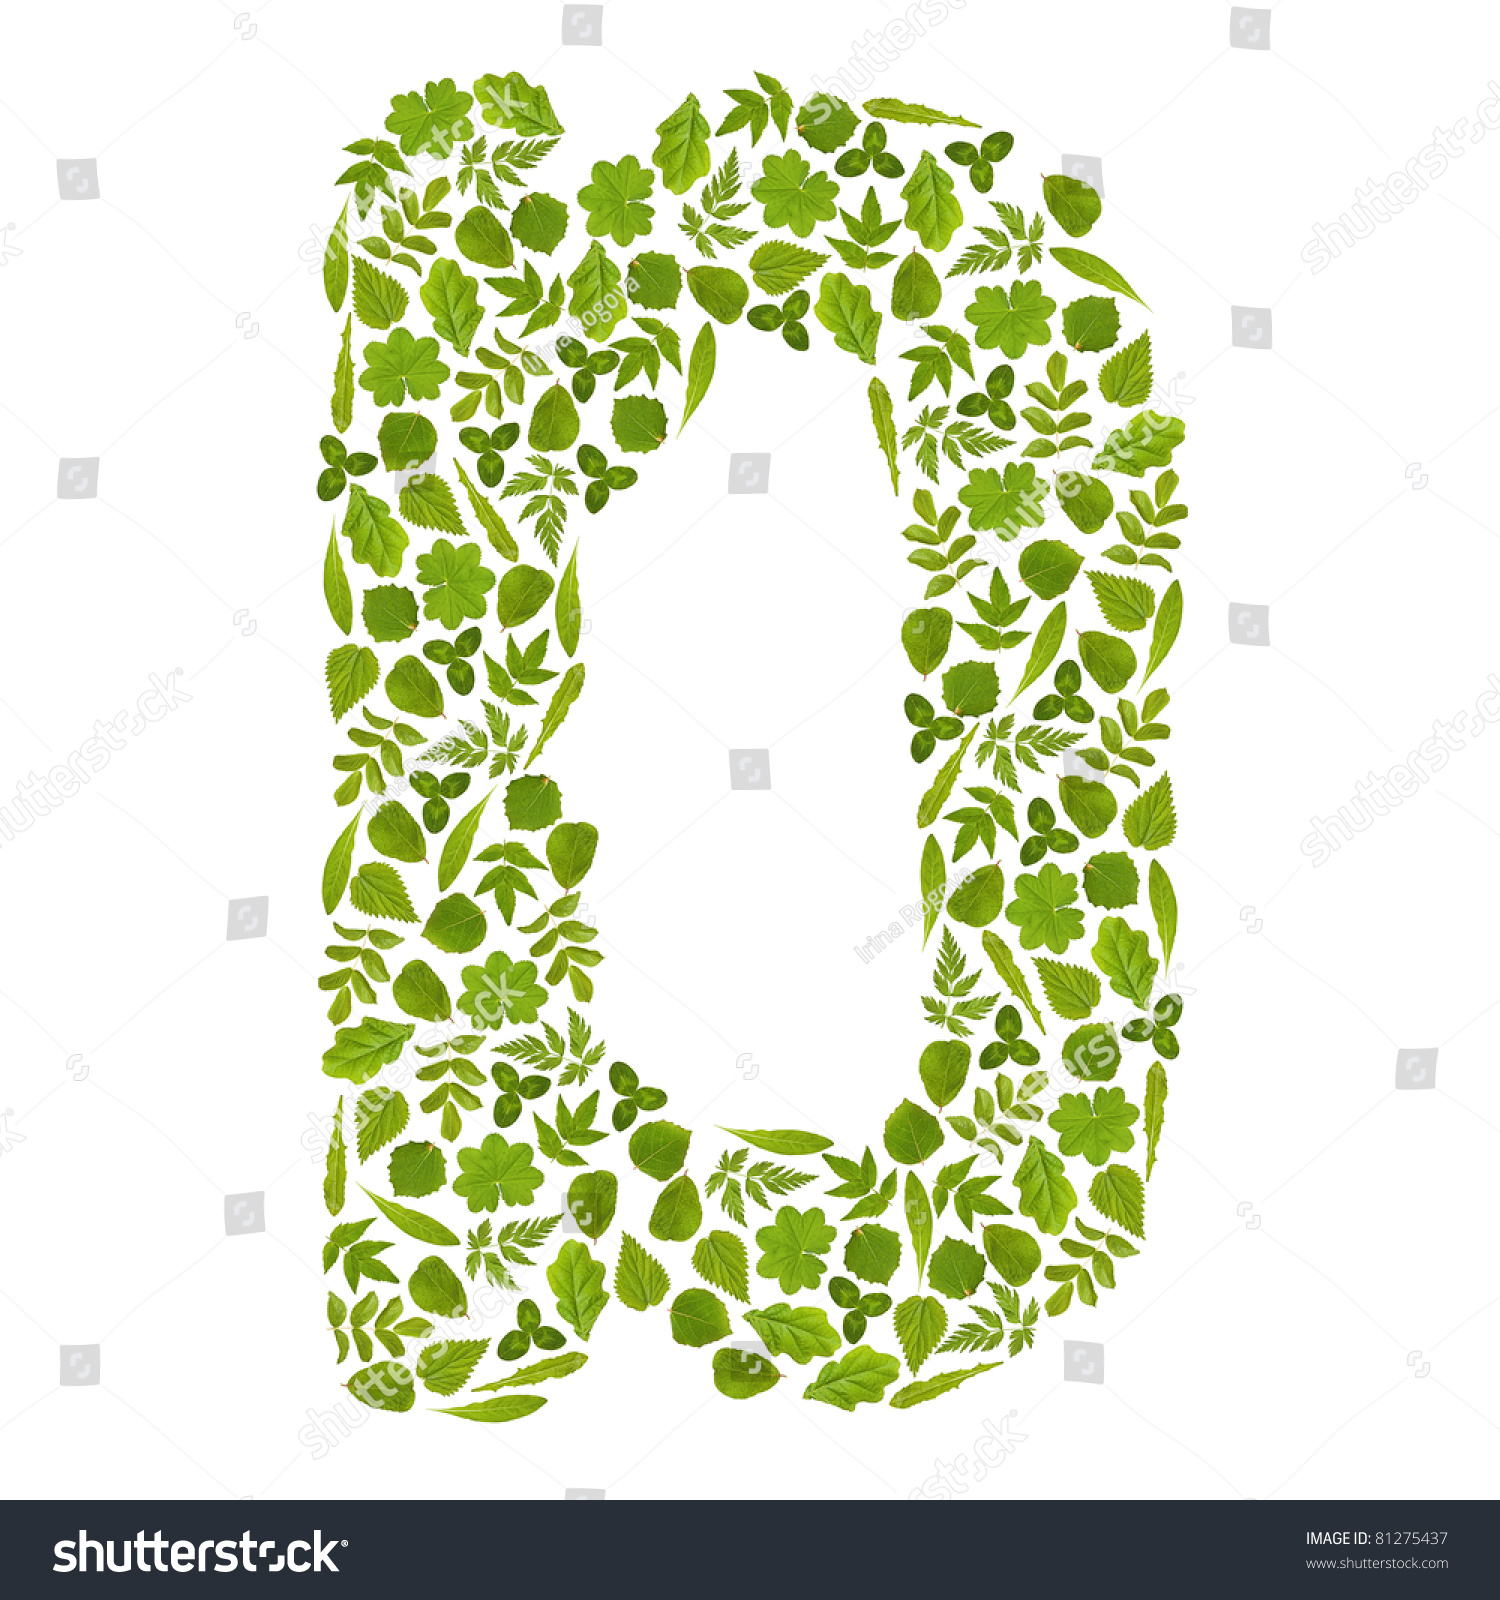 Letter D Green Leafs Stock Photo 81275437 - Shutterstock